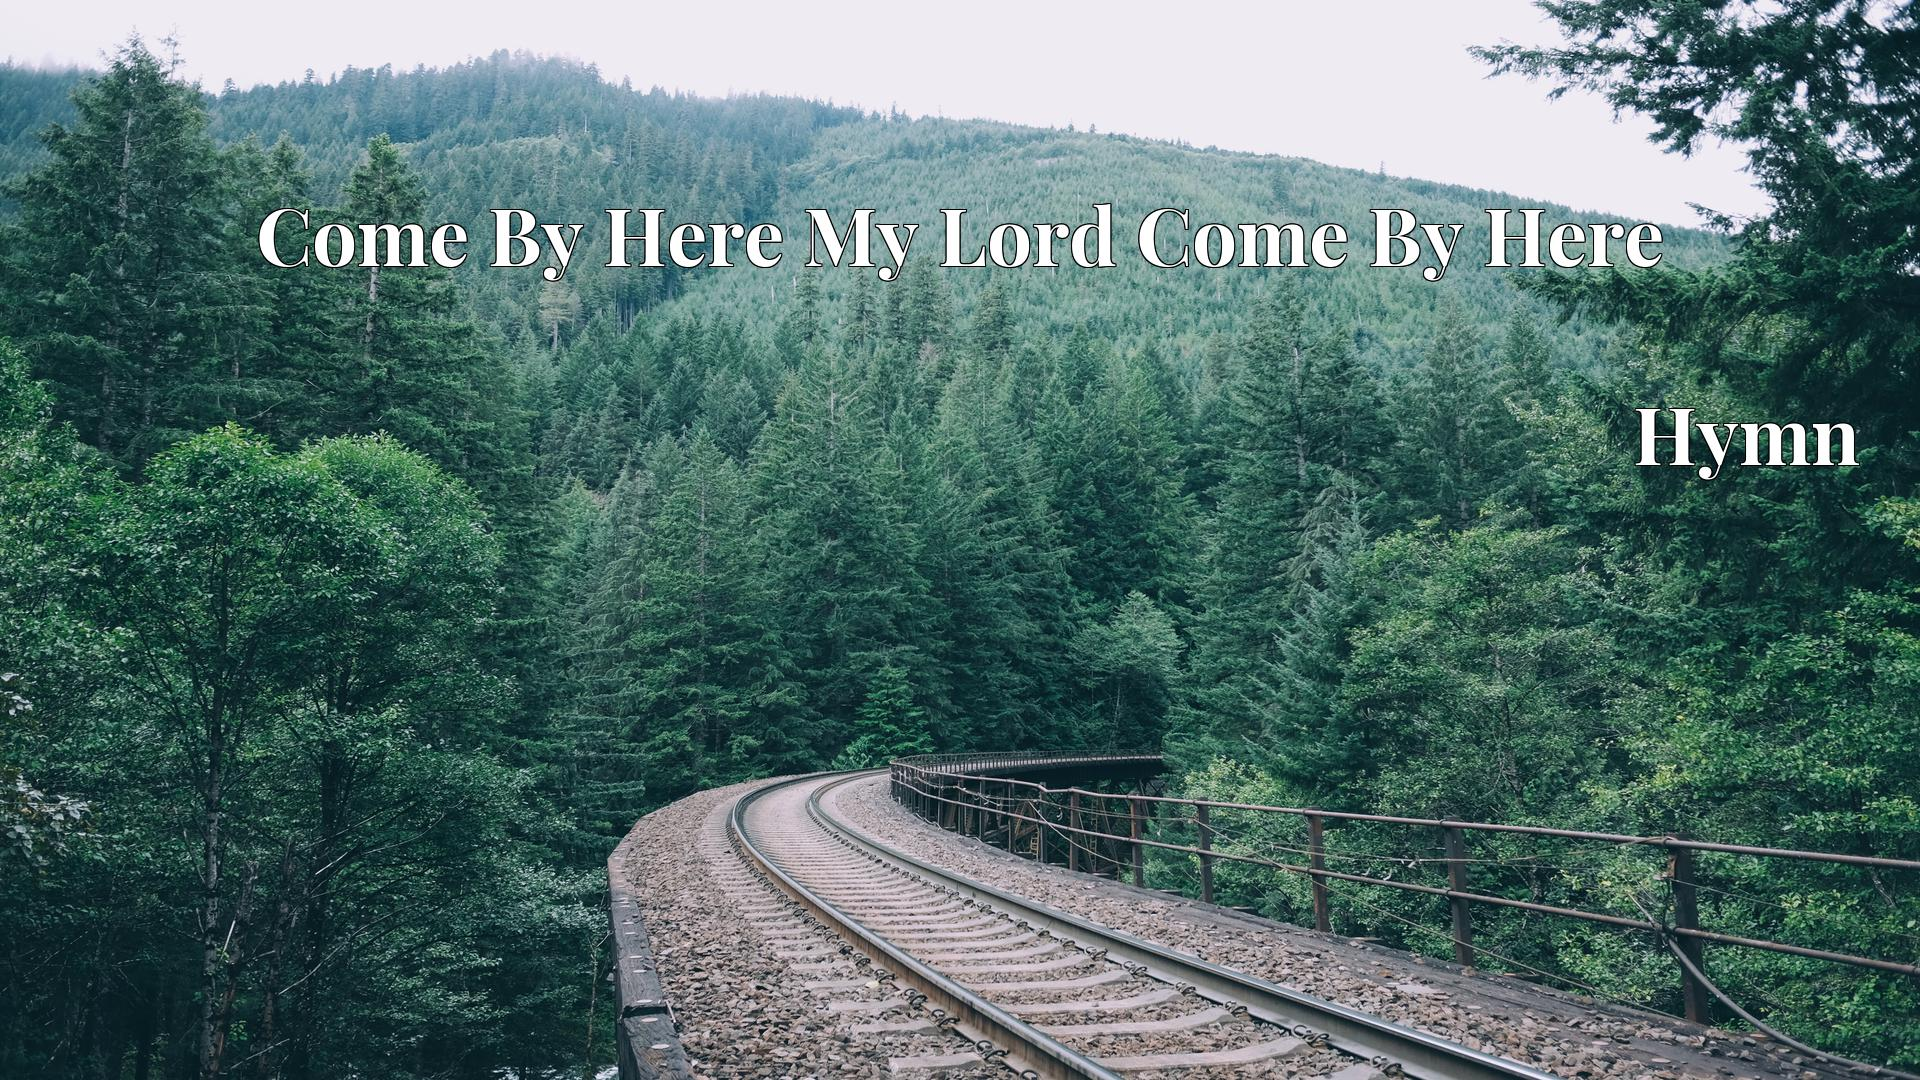 Come By Here My Lord Come By Here - Hymn